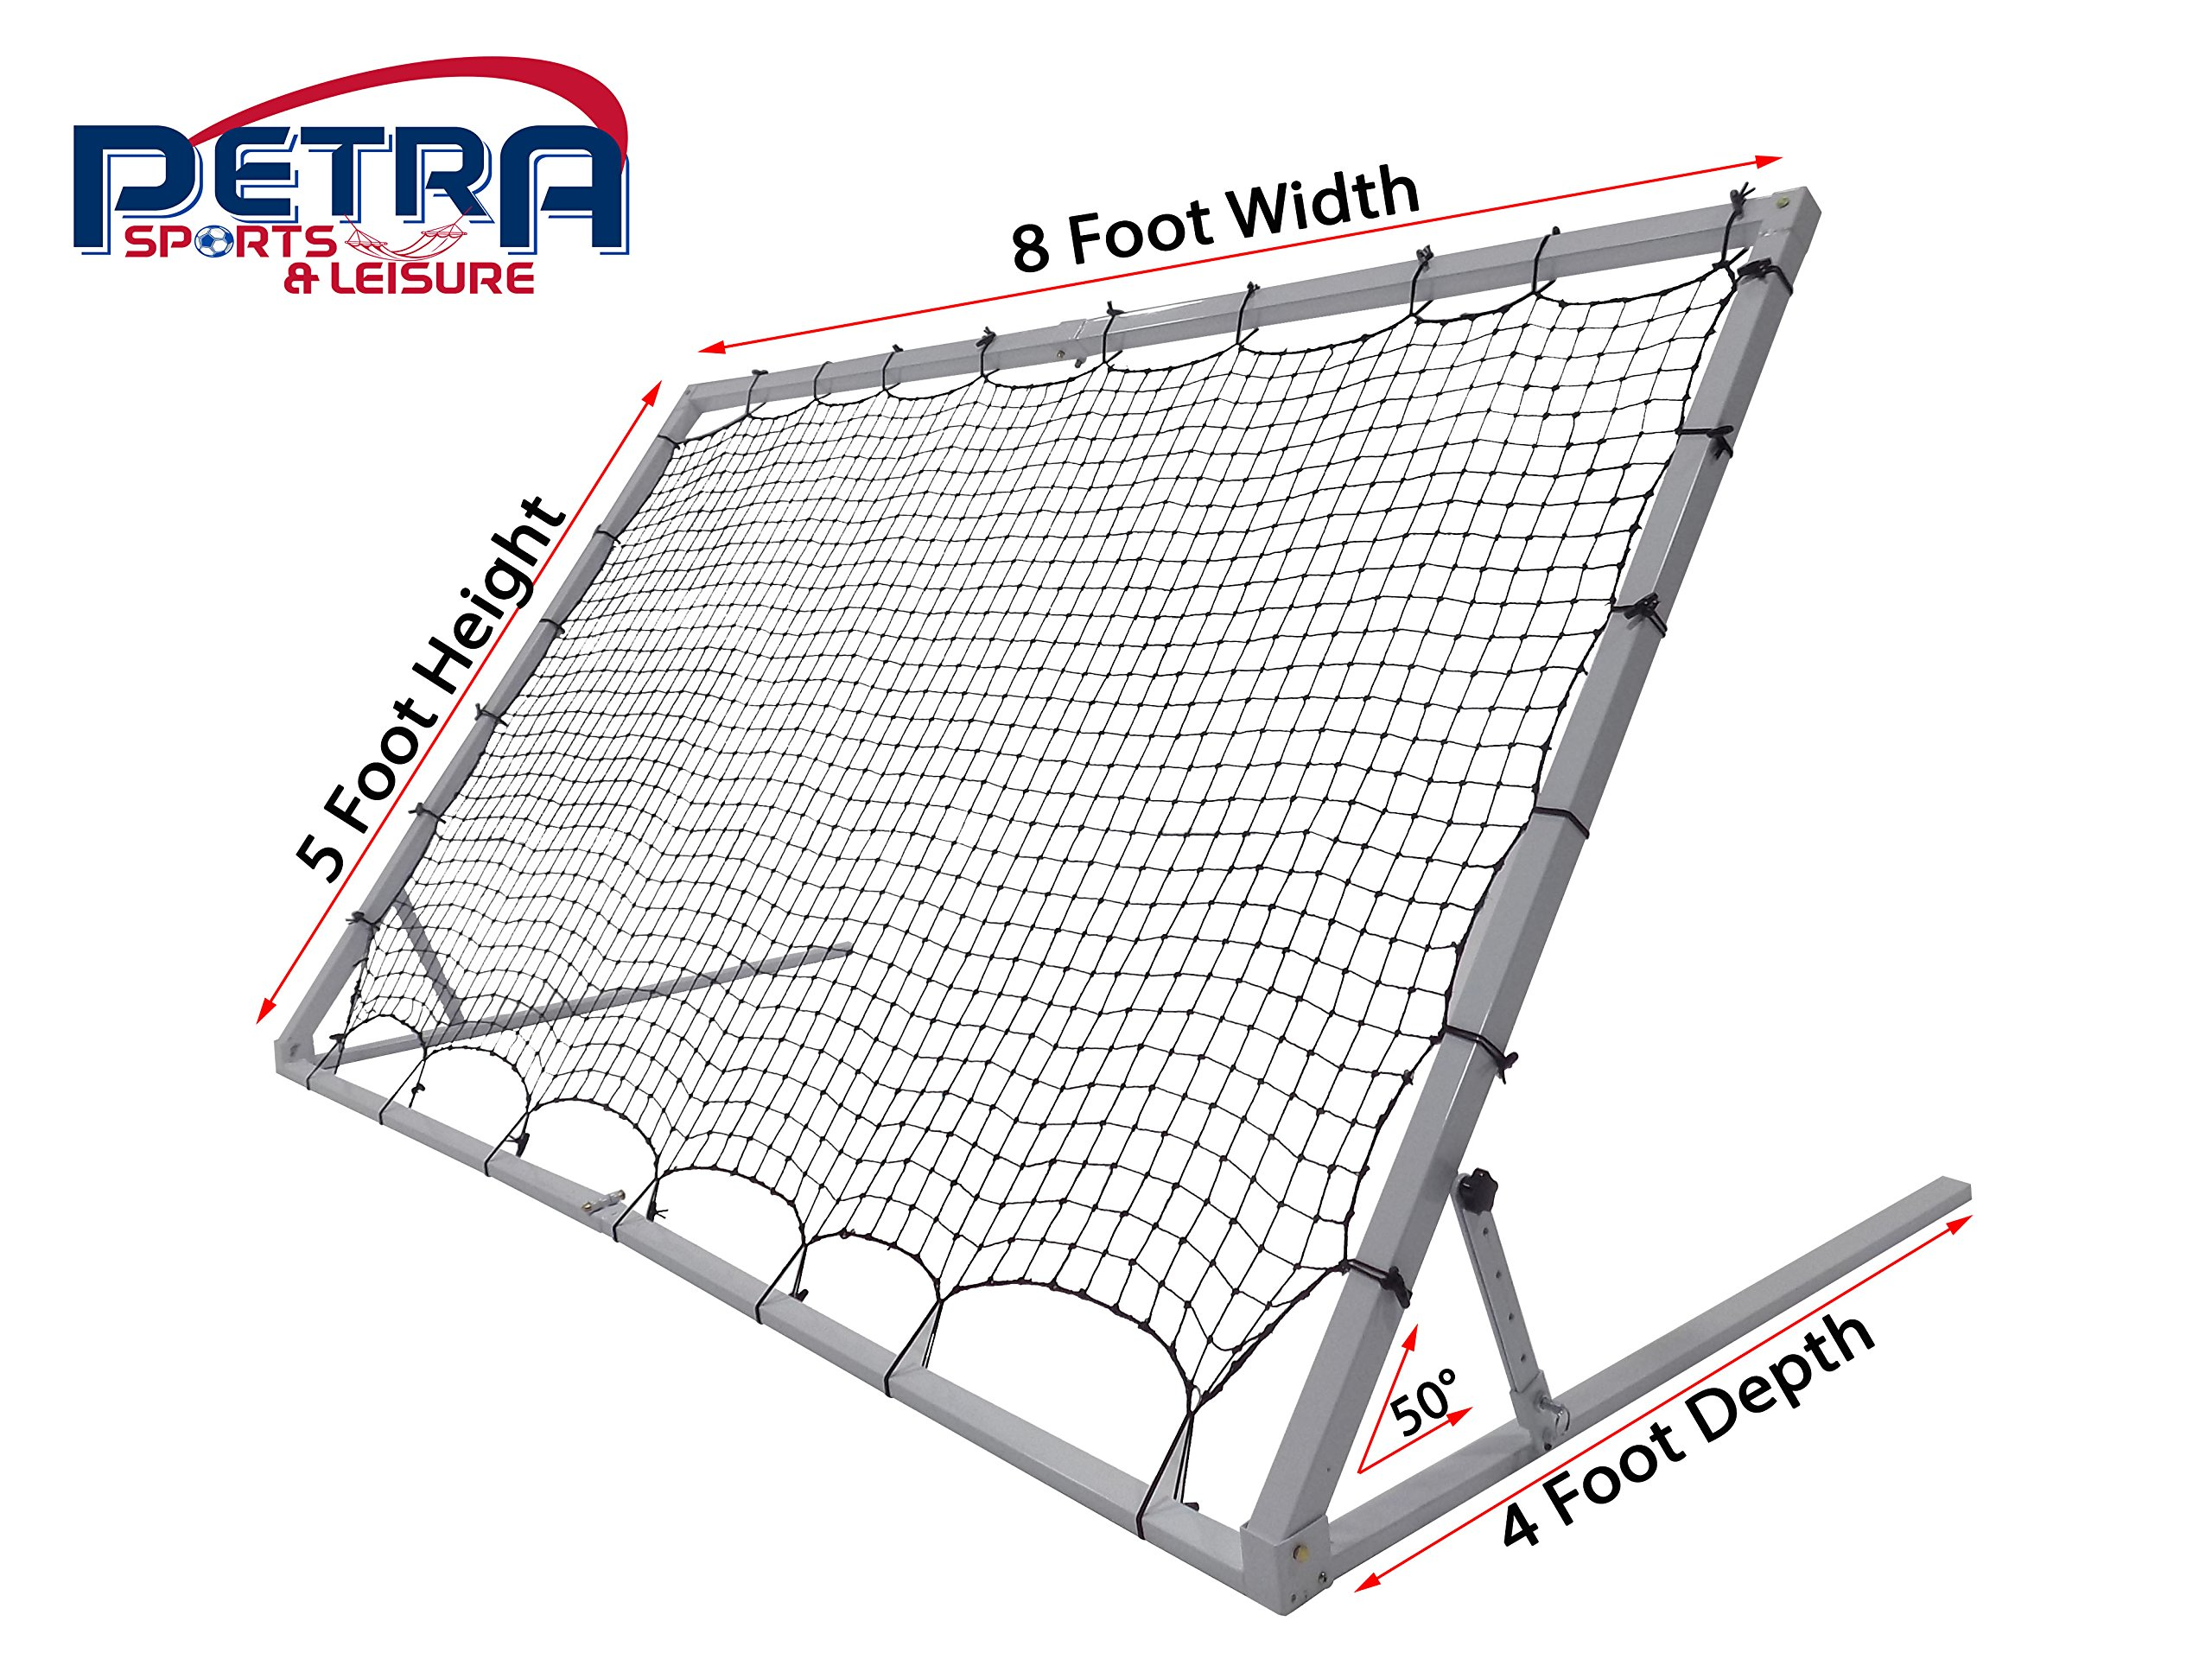 Pass 8 x 5 Ft. 3MM Industrial Steel Frame Training Rebounder w/5 Angle Positions. Portable Soccer, Baseball, Softball, Basketball, Lacrosse Practice Aid.